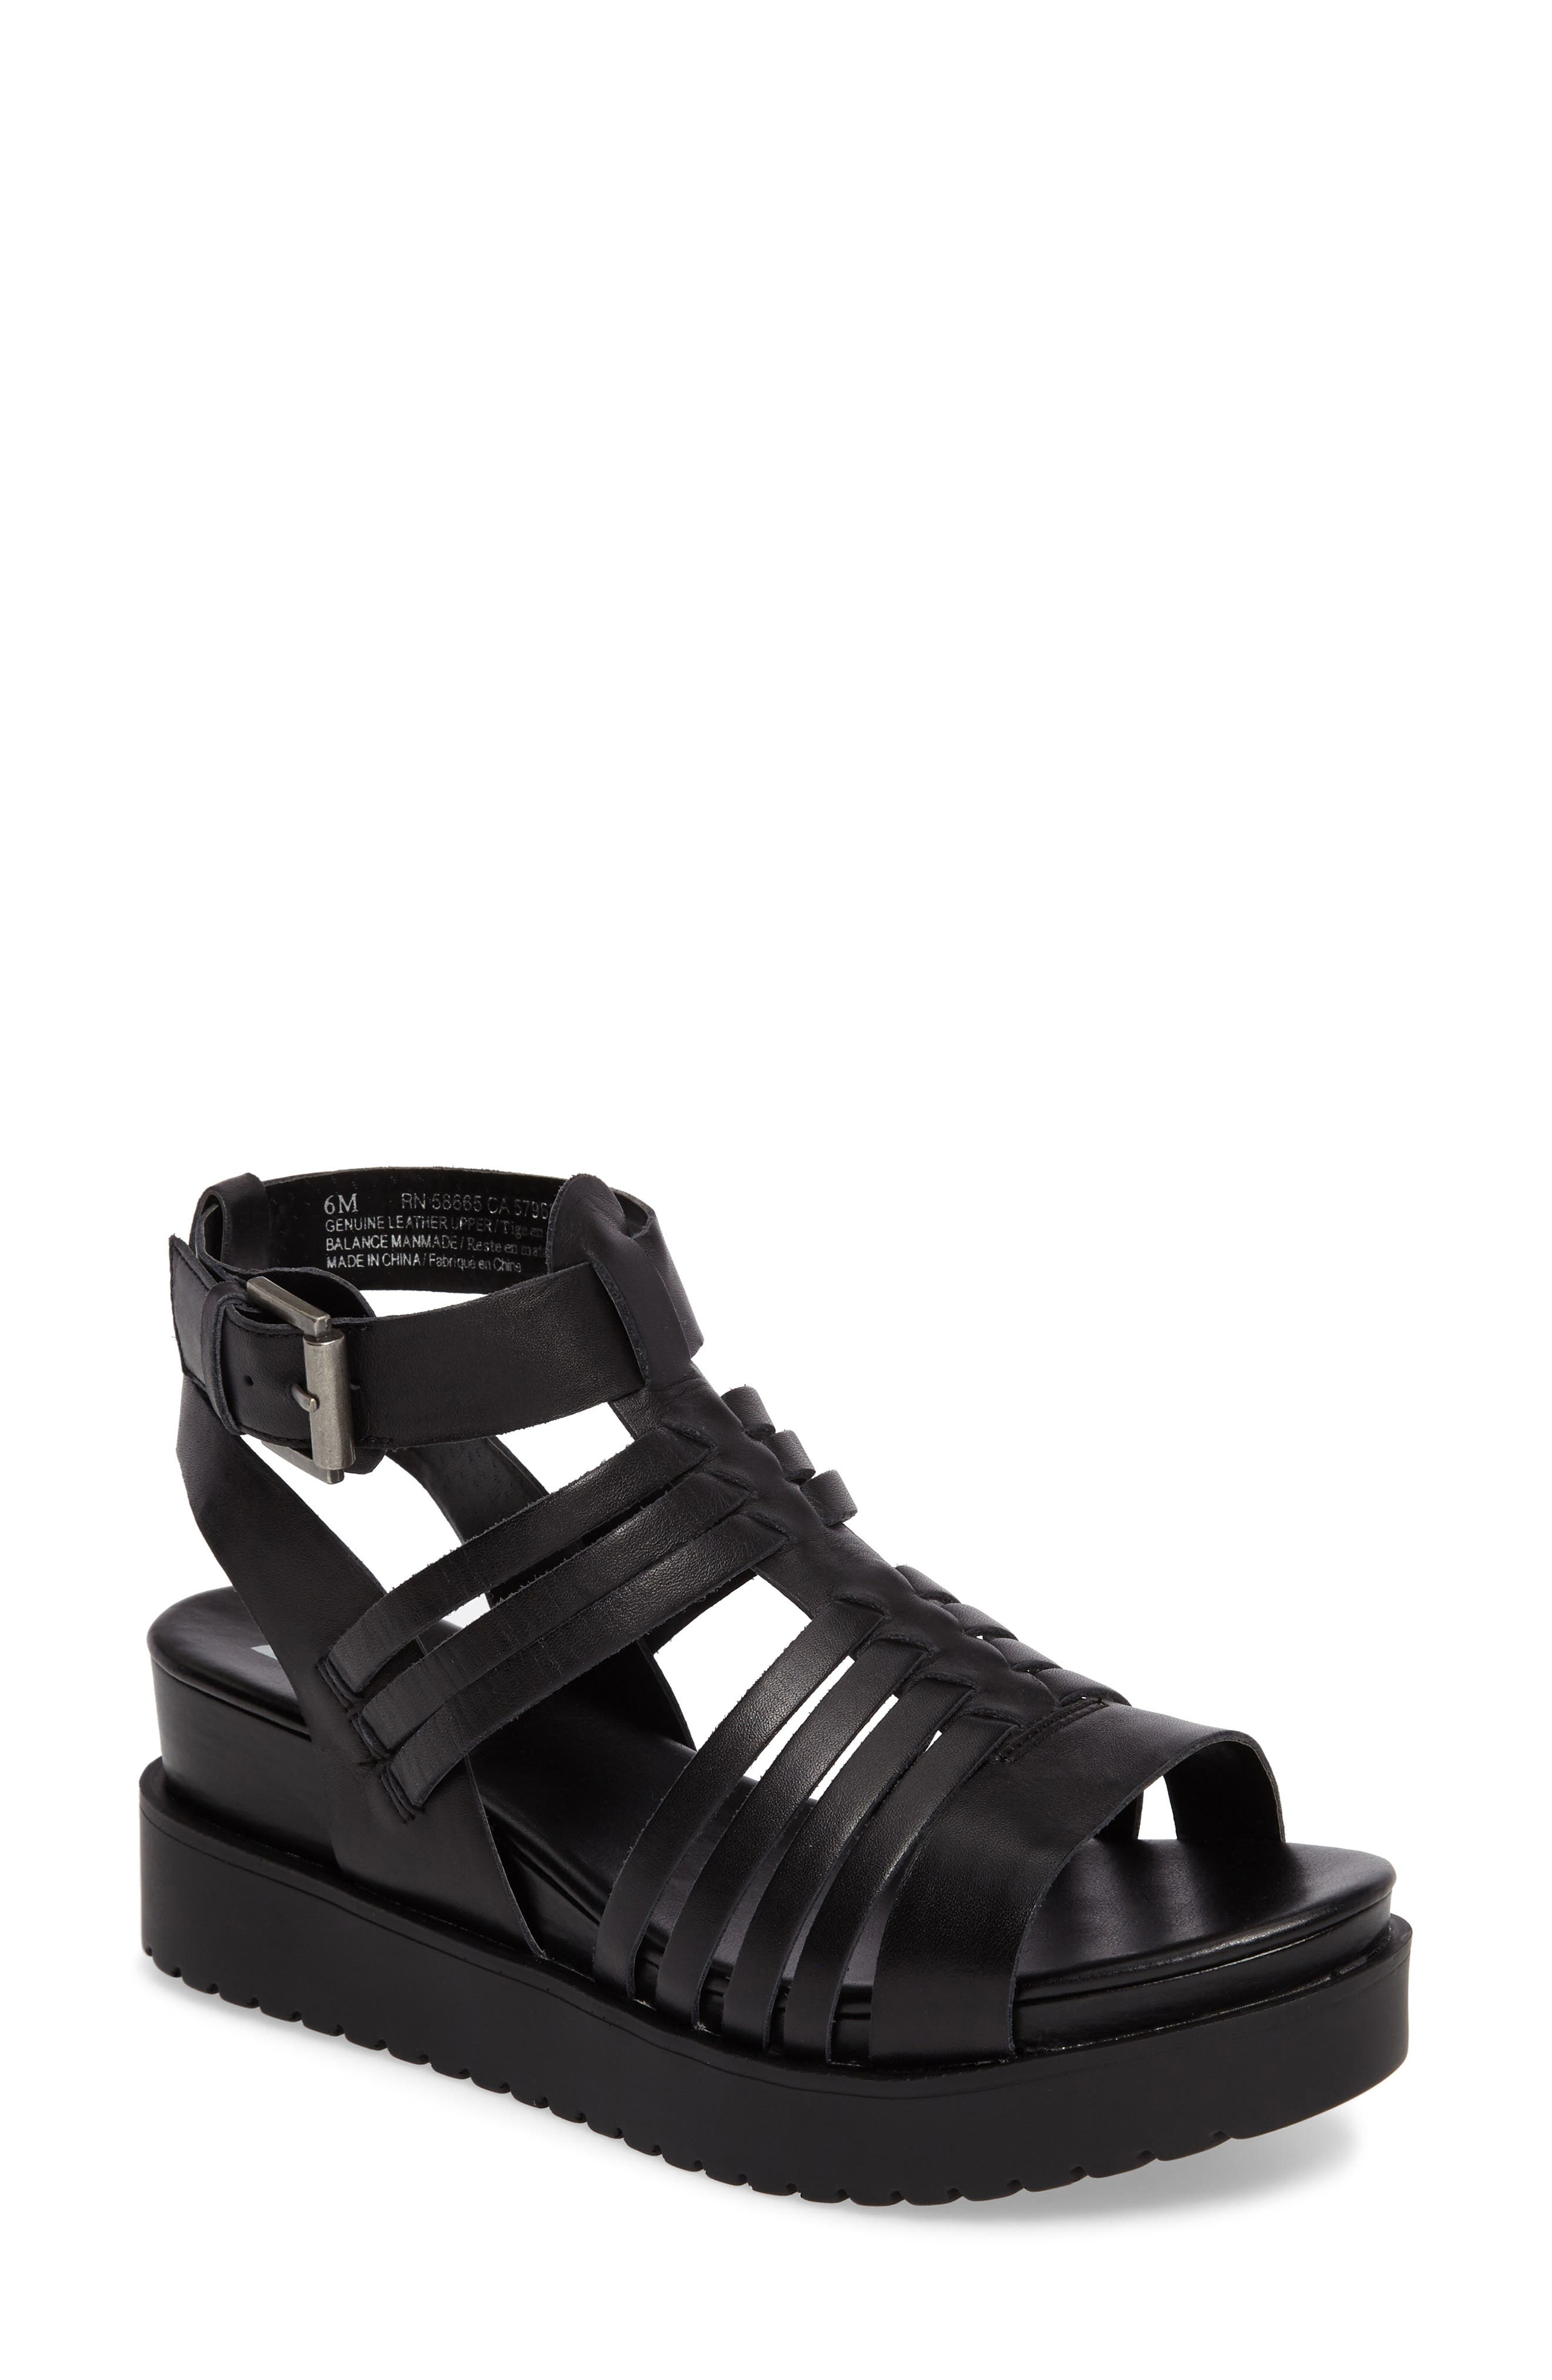 Ronnie Gladiator Platform Sandal,                             Main thumbnail 1, color,                             Black Leather